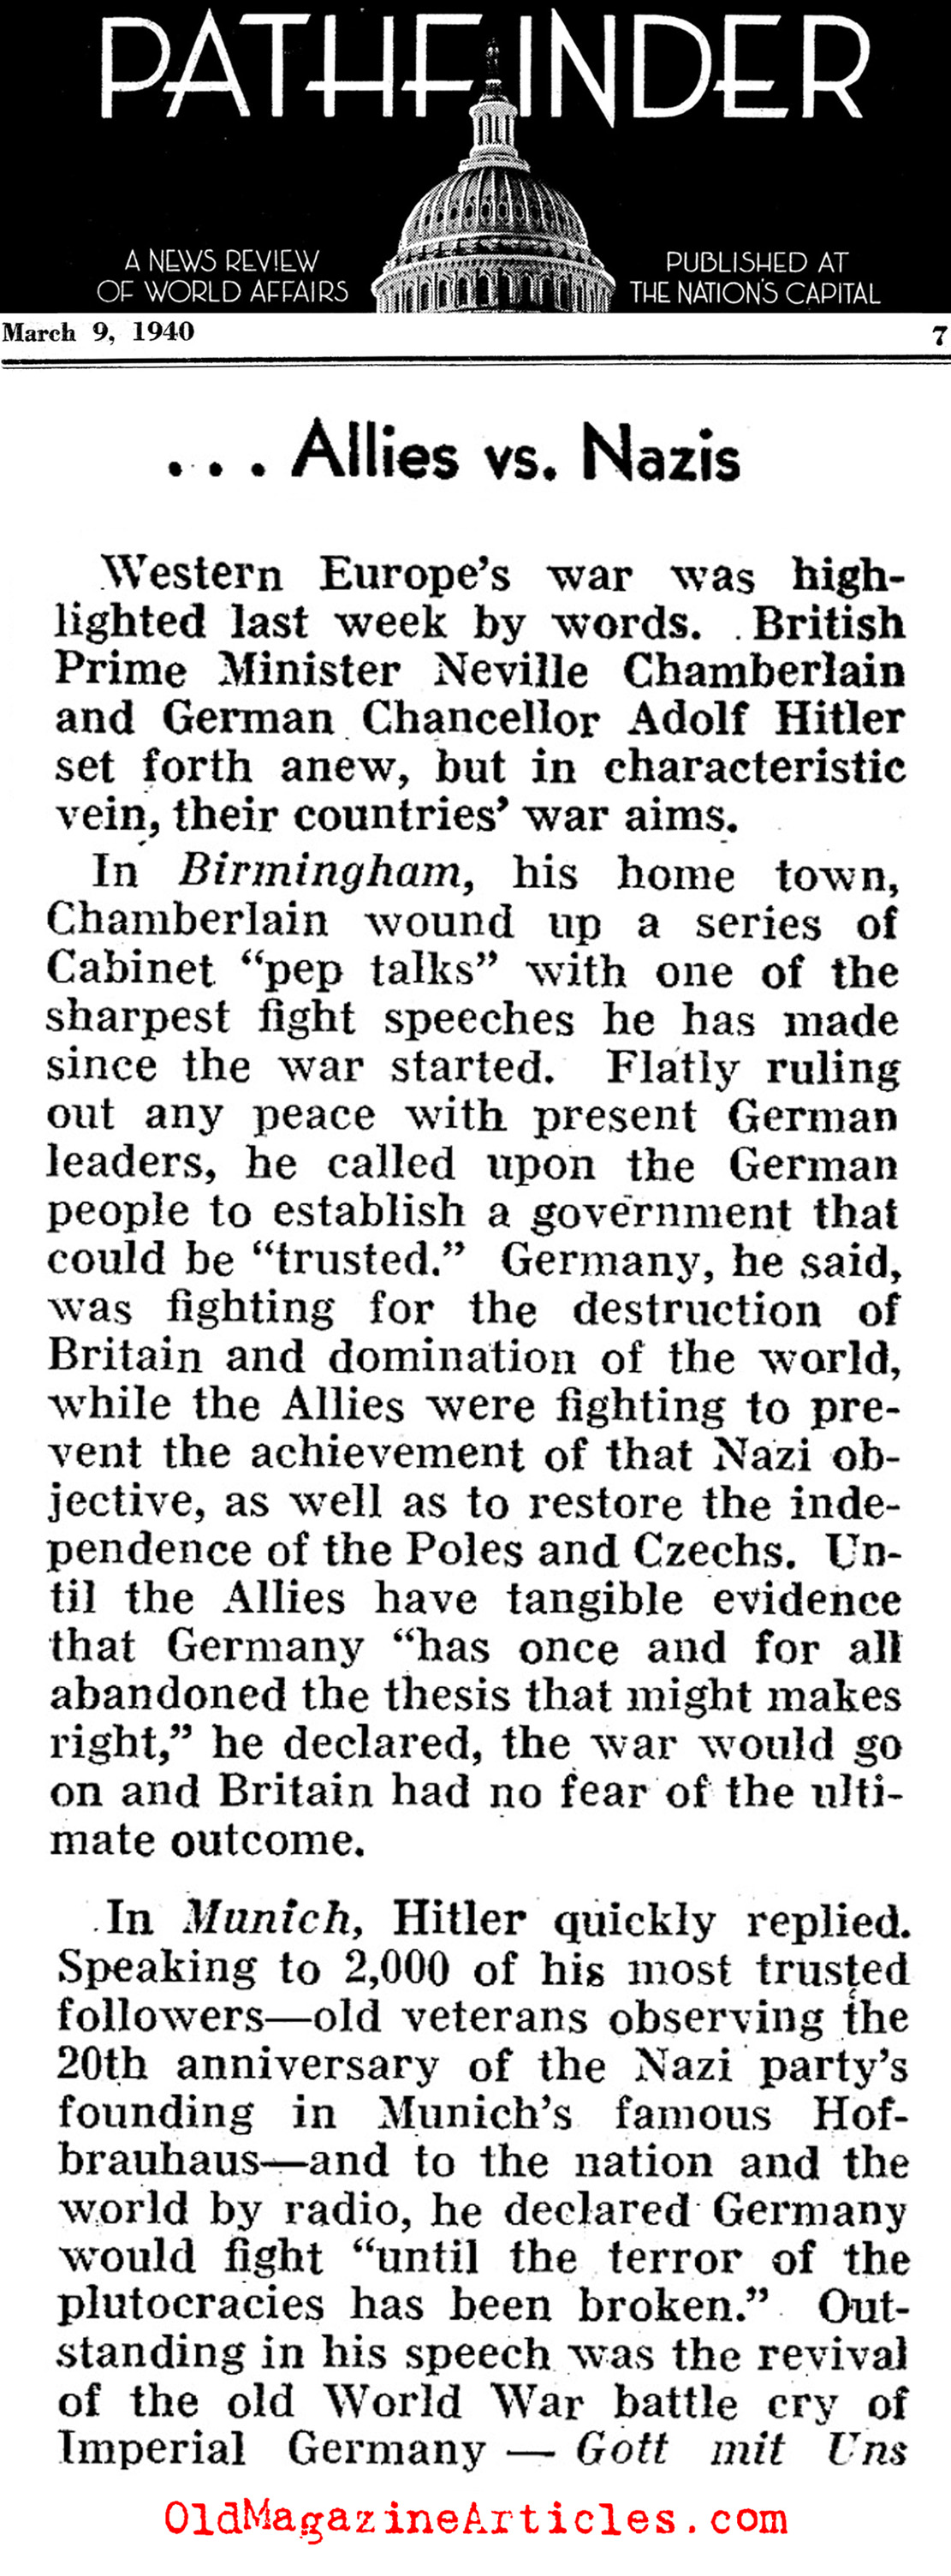 Speeches by Hitler and Chamberlain Compared (Pathfinder Magazine, 1940)